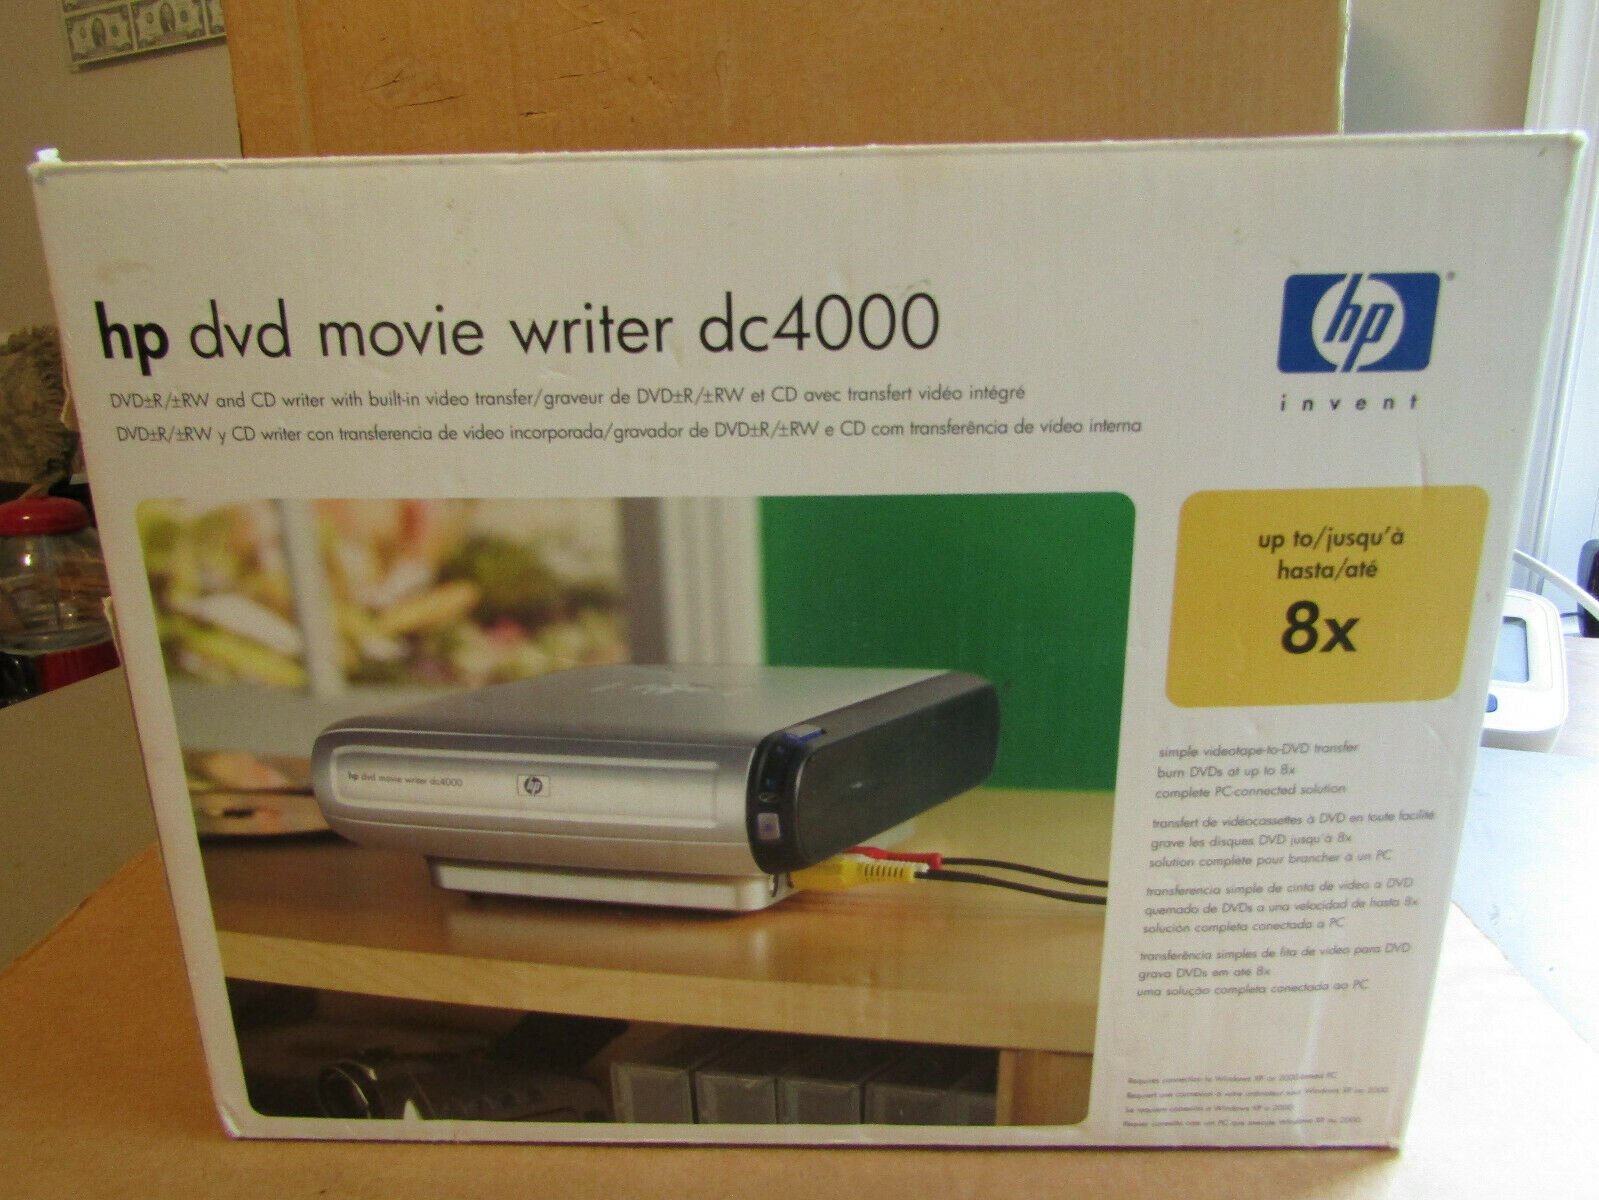 HP MOVIE WRITER DC4000 DRIVERS FOR WINDOWS